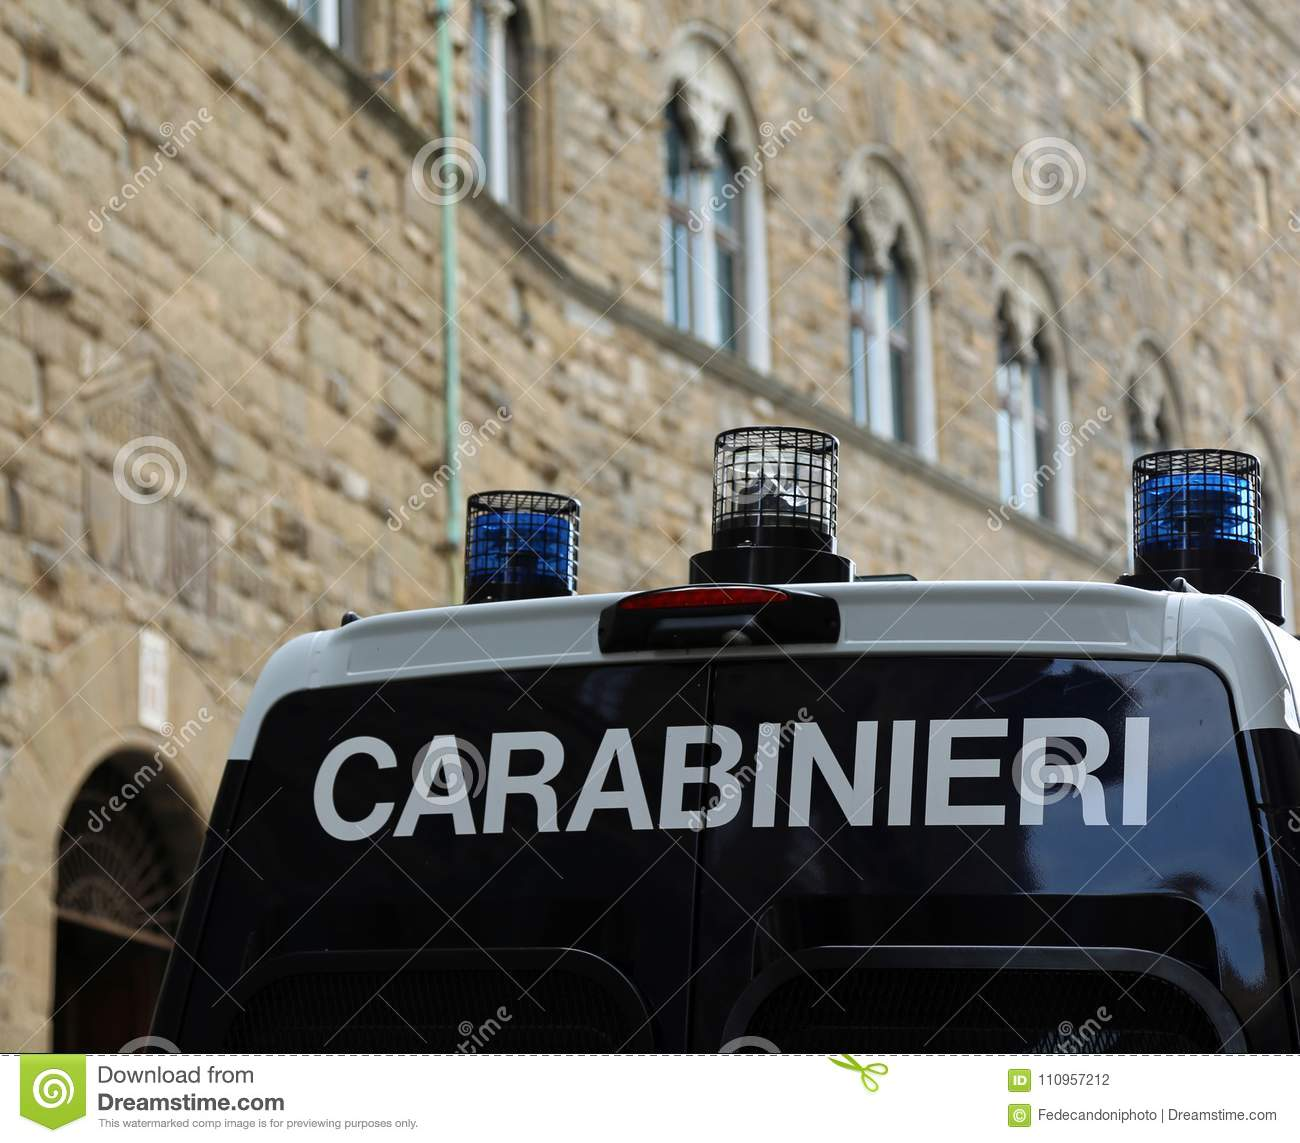 police van in a city during the protest demonstration. The italian police force is called CARABINIERI